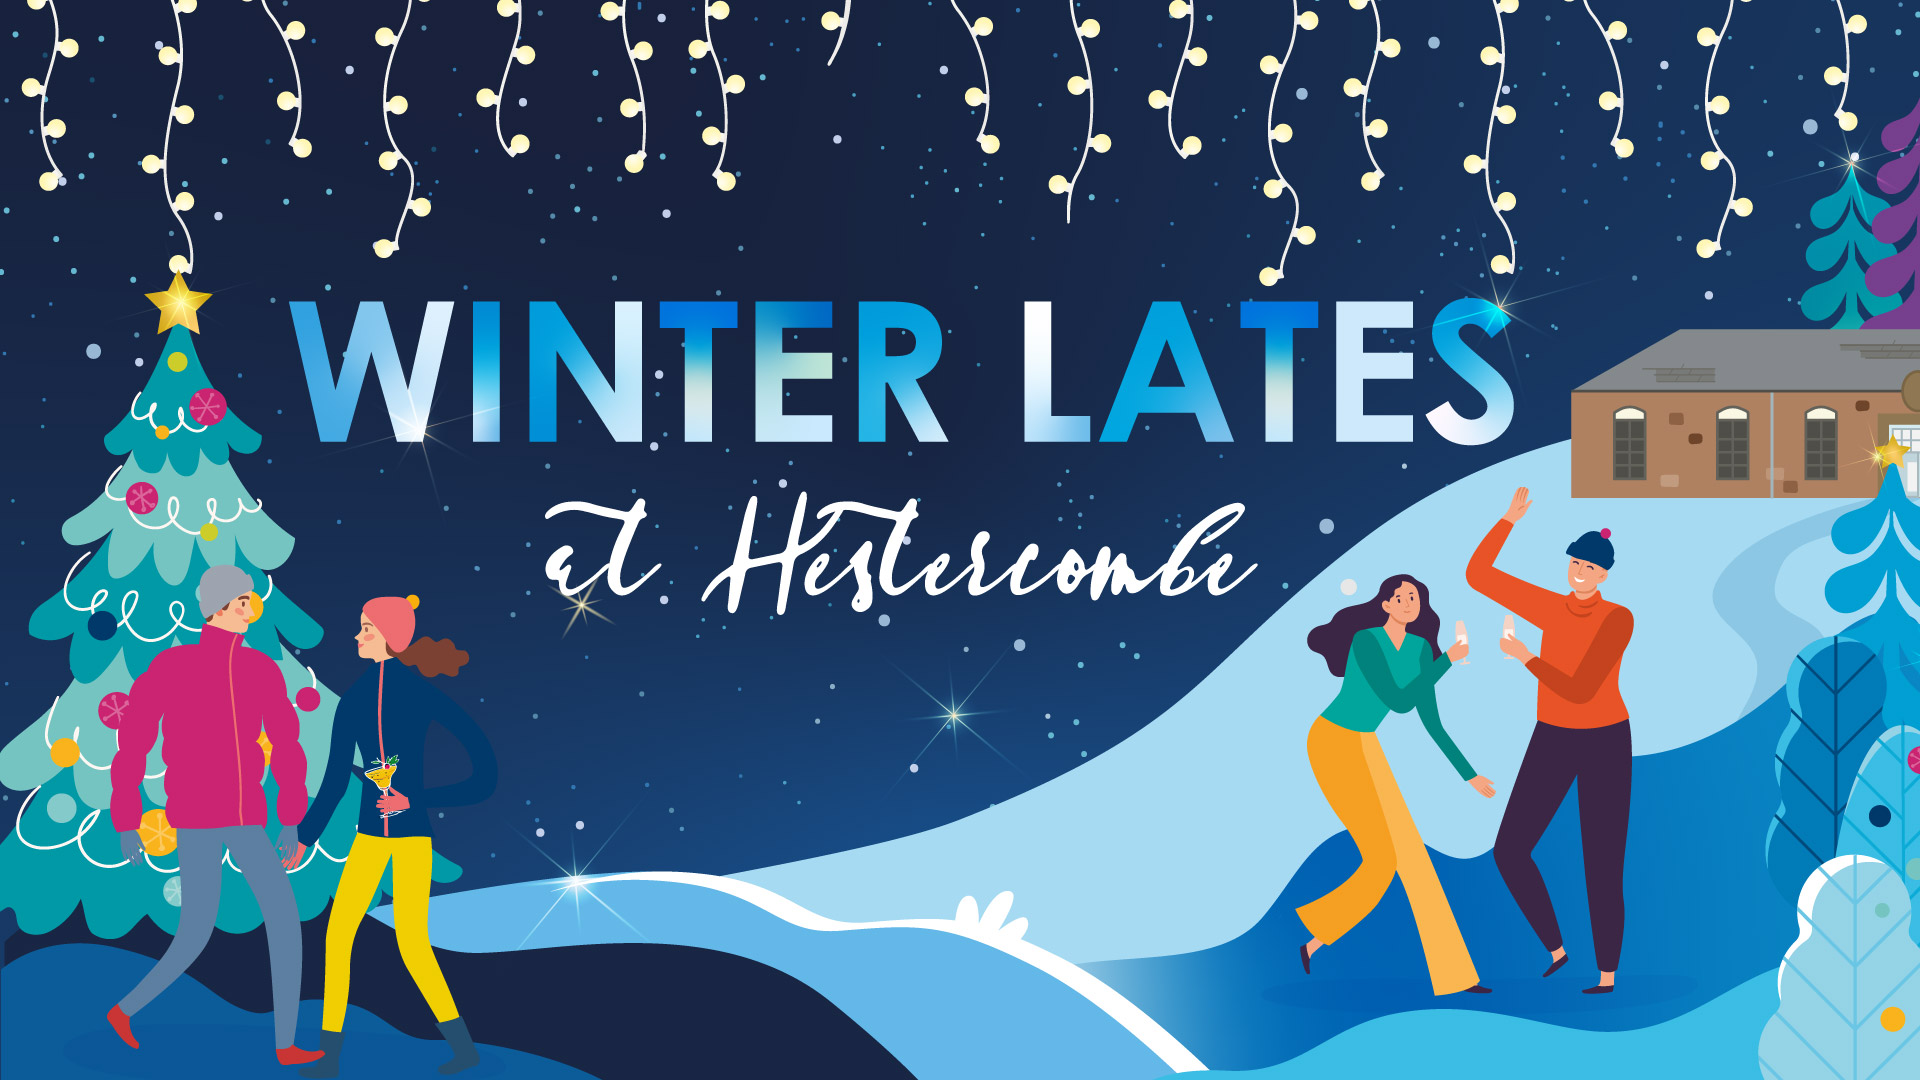 Winter Lates at Hestercombe